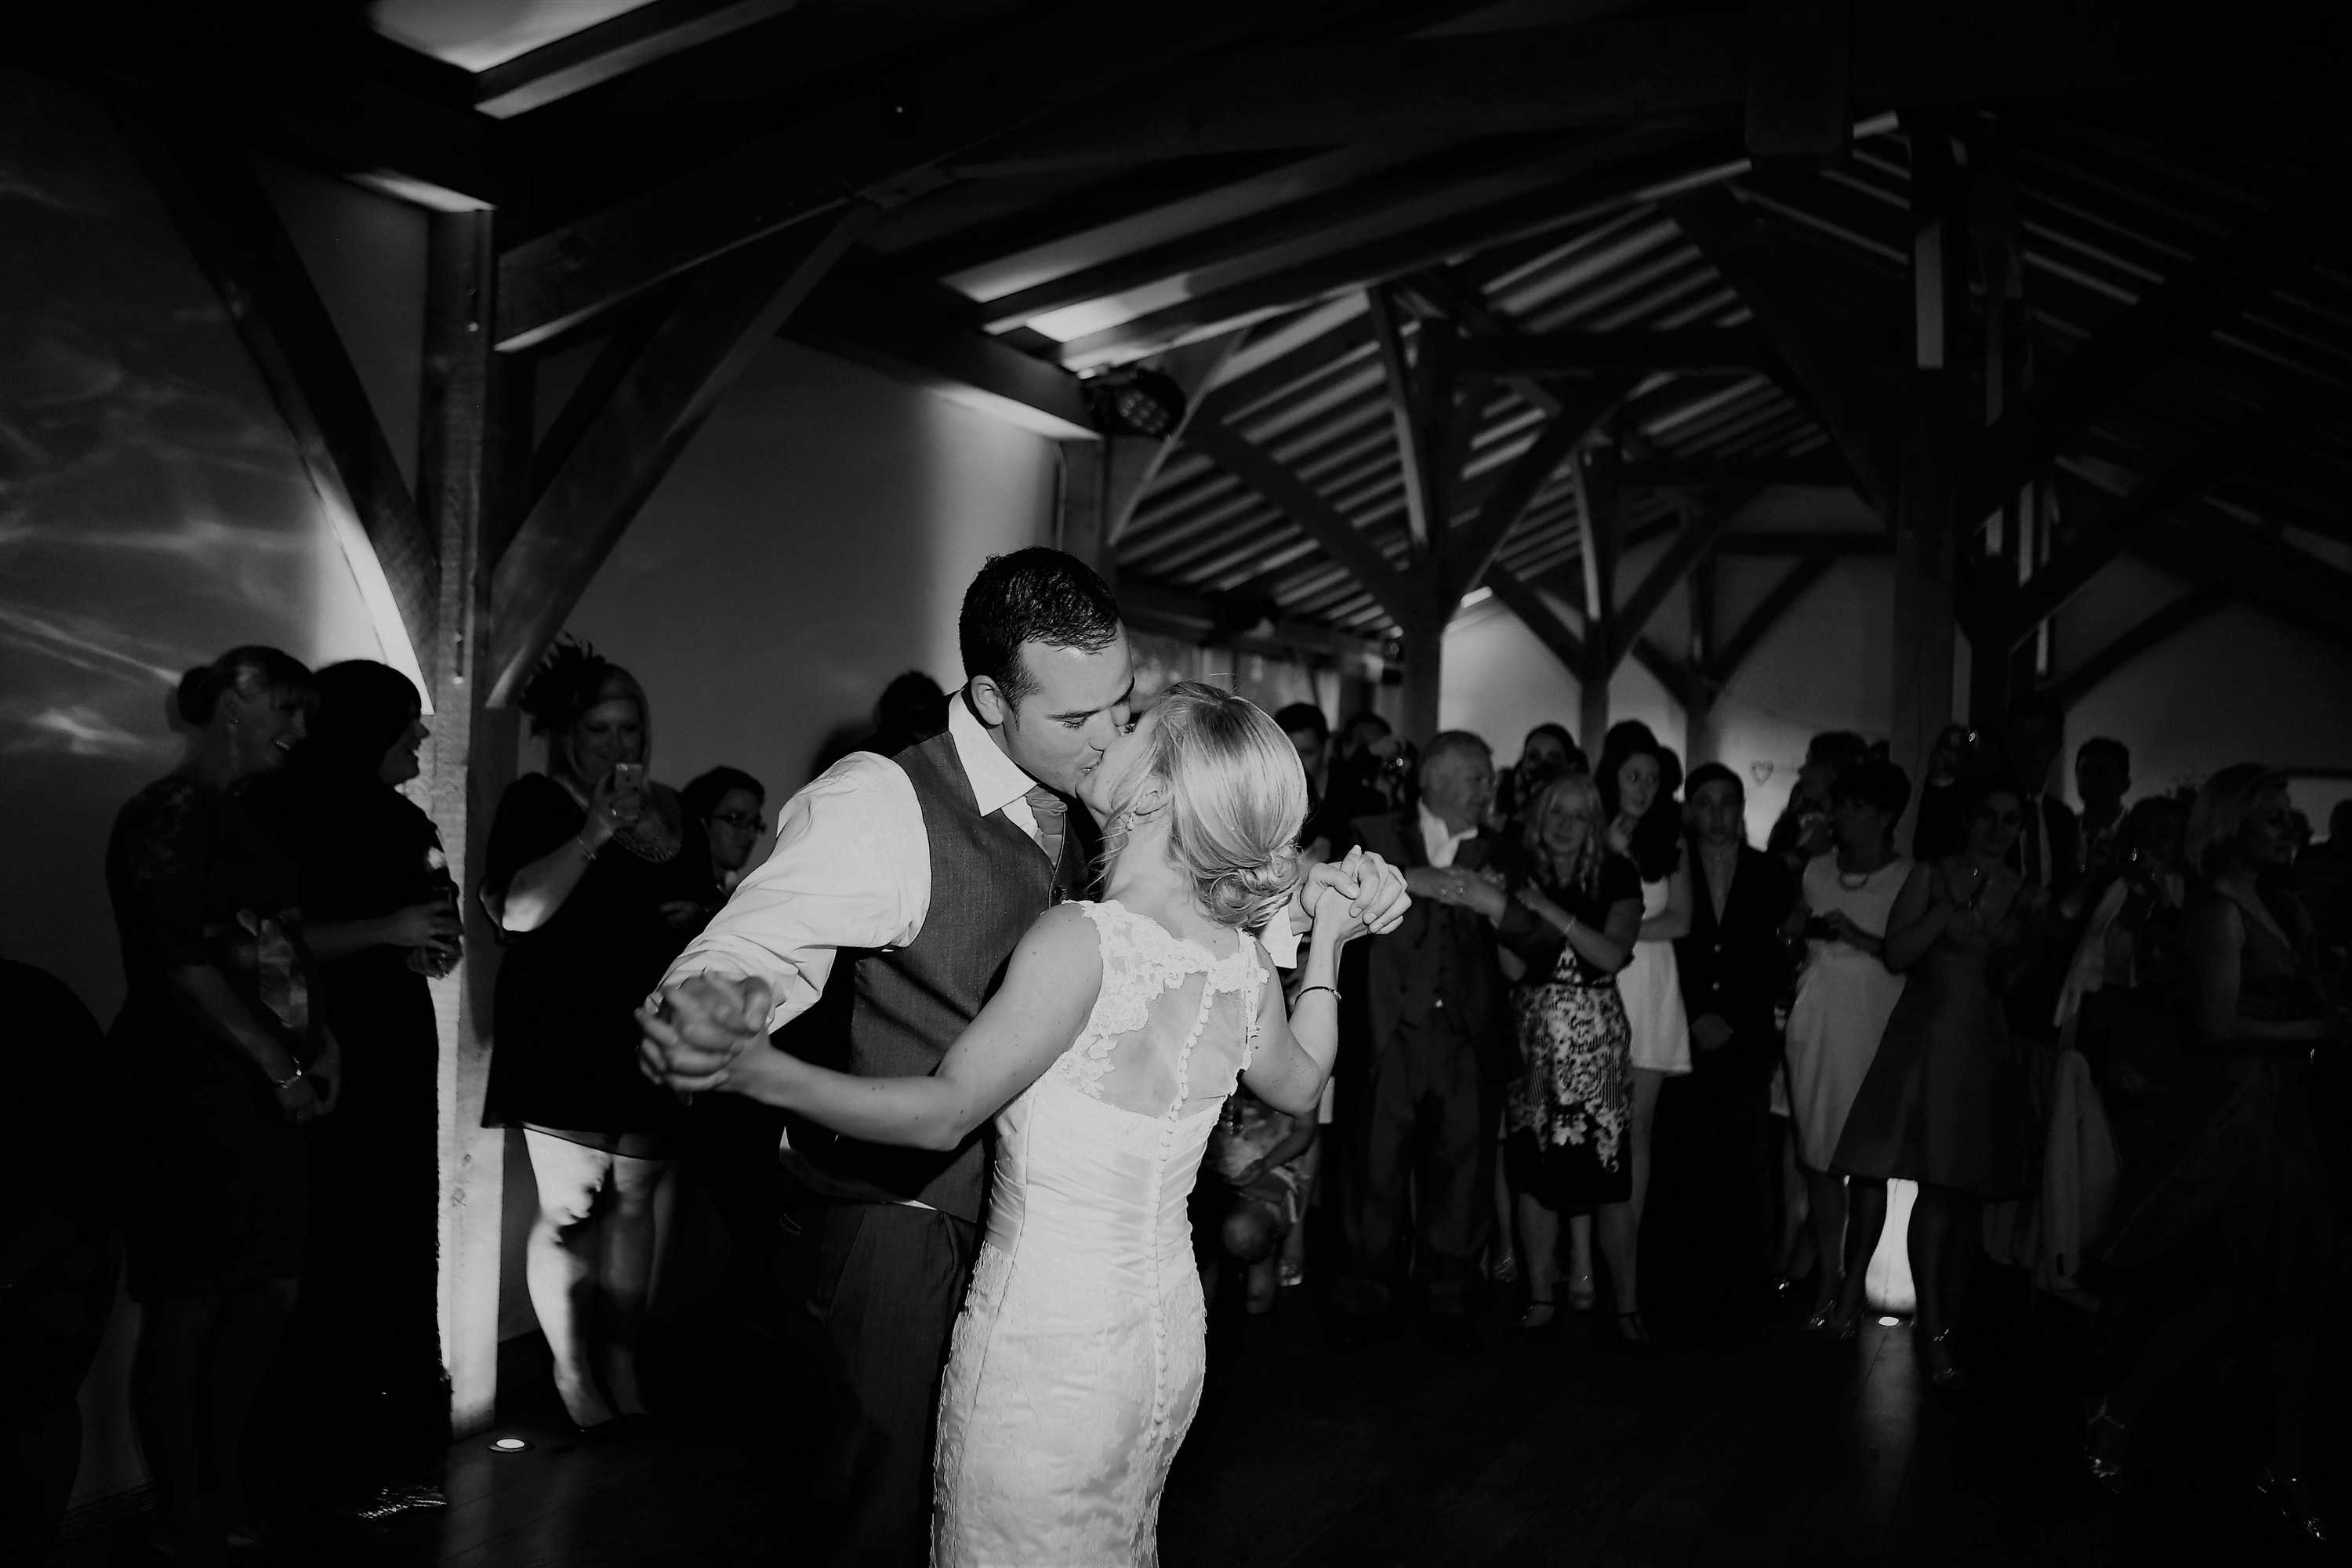 At a wedding inside the barn - the evening do